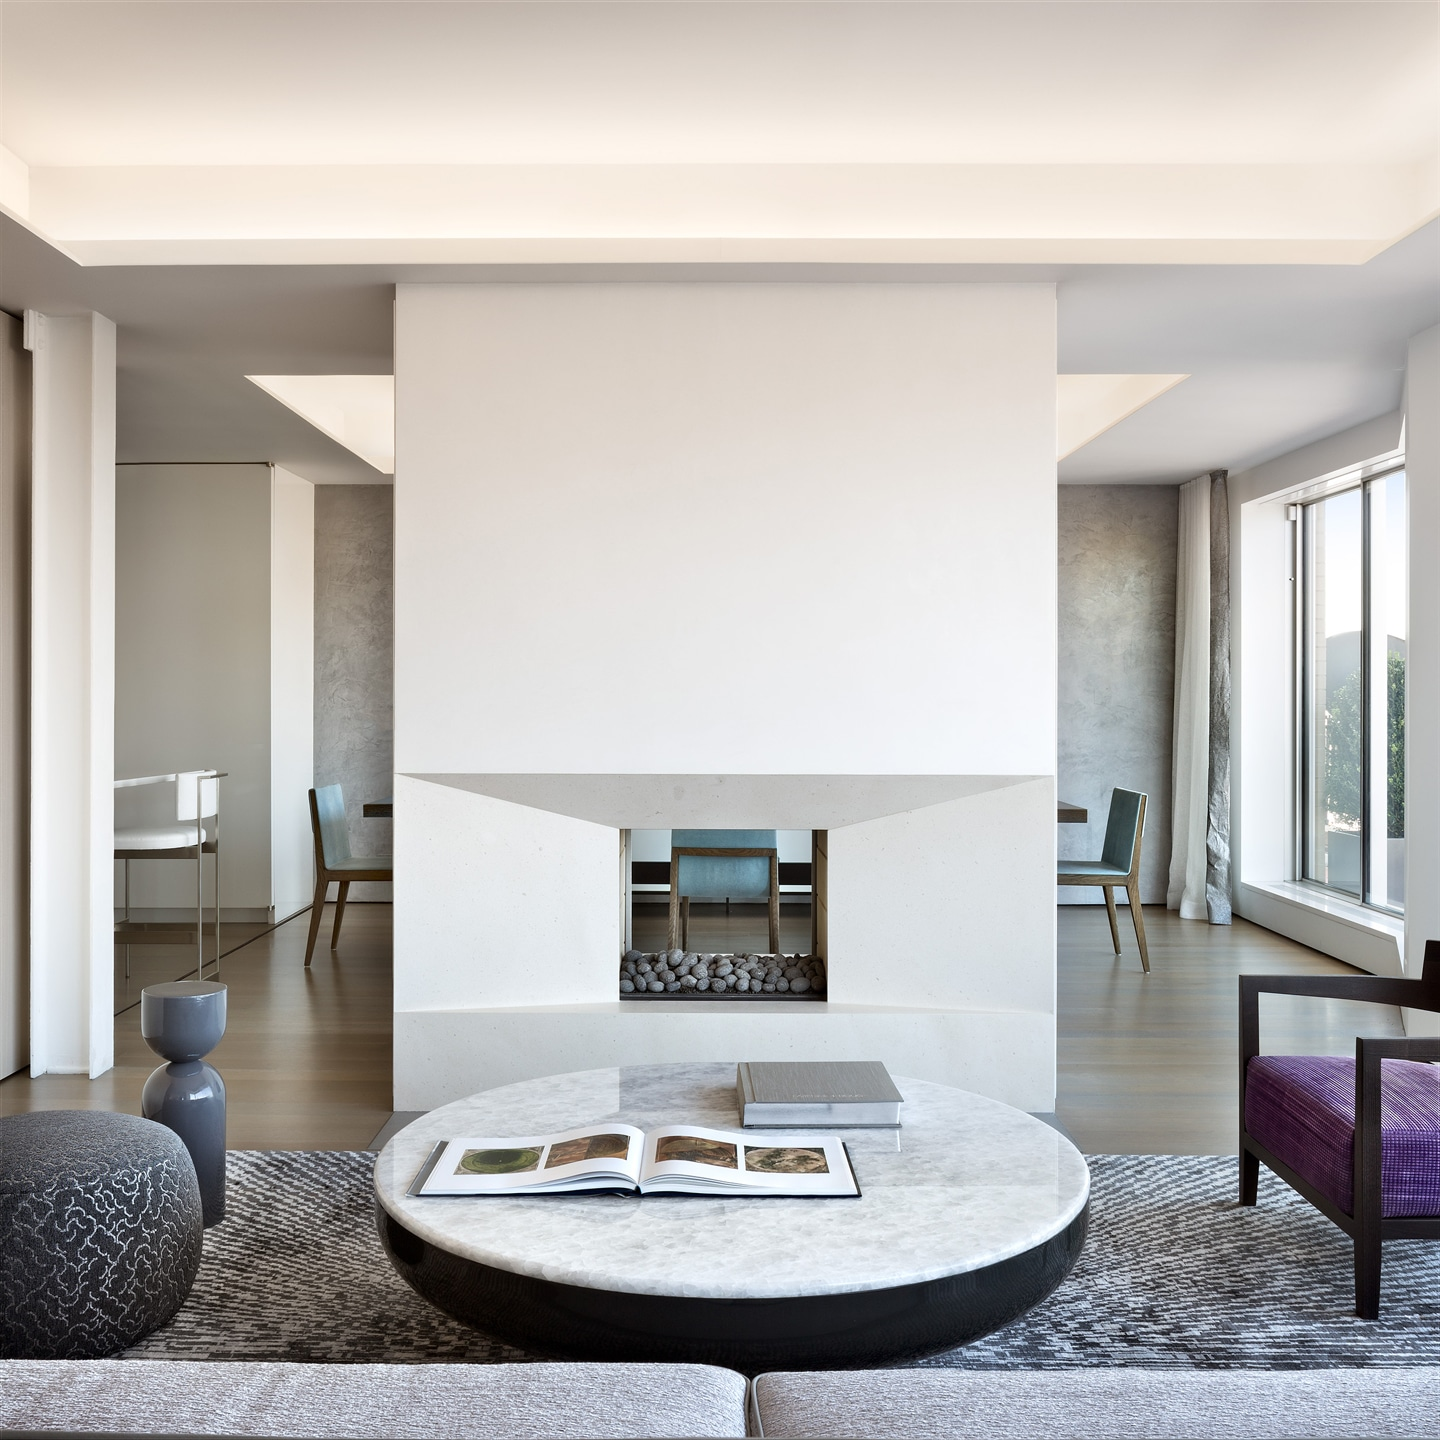 see-through-fireplace-for-open-plan-living-room1100-architect